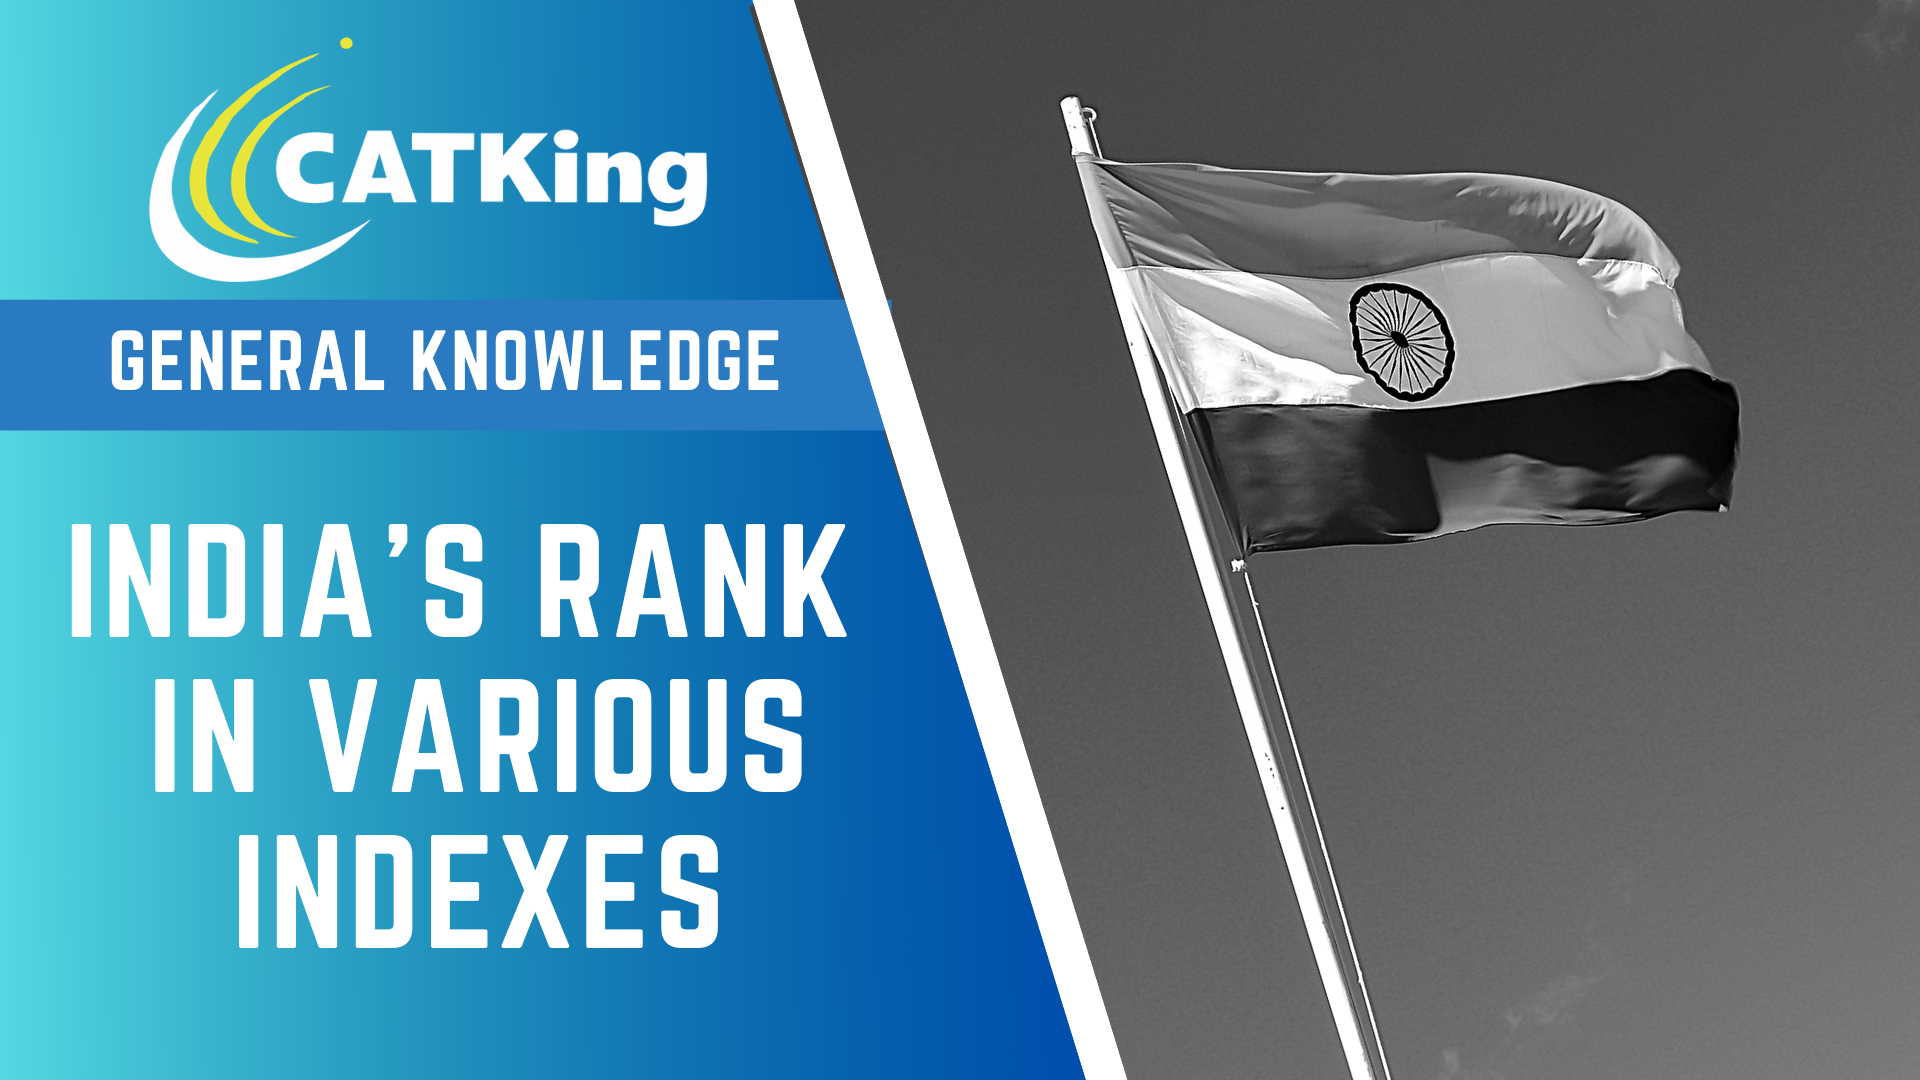 catking cover india's ranking in indexes